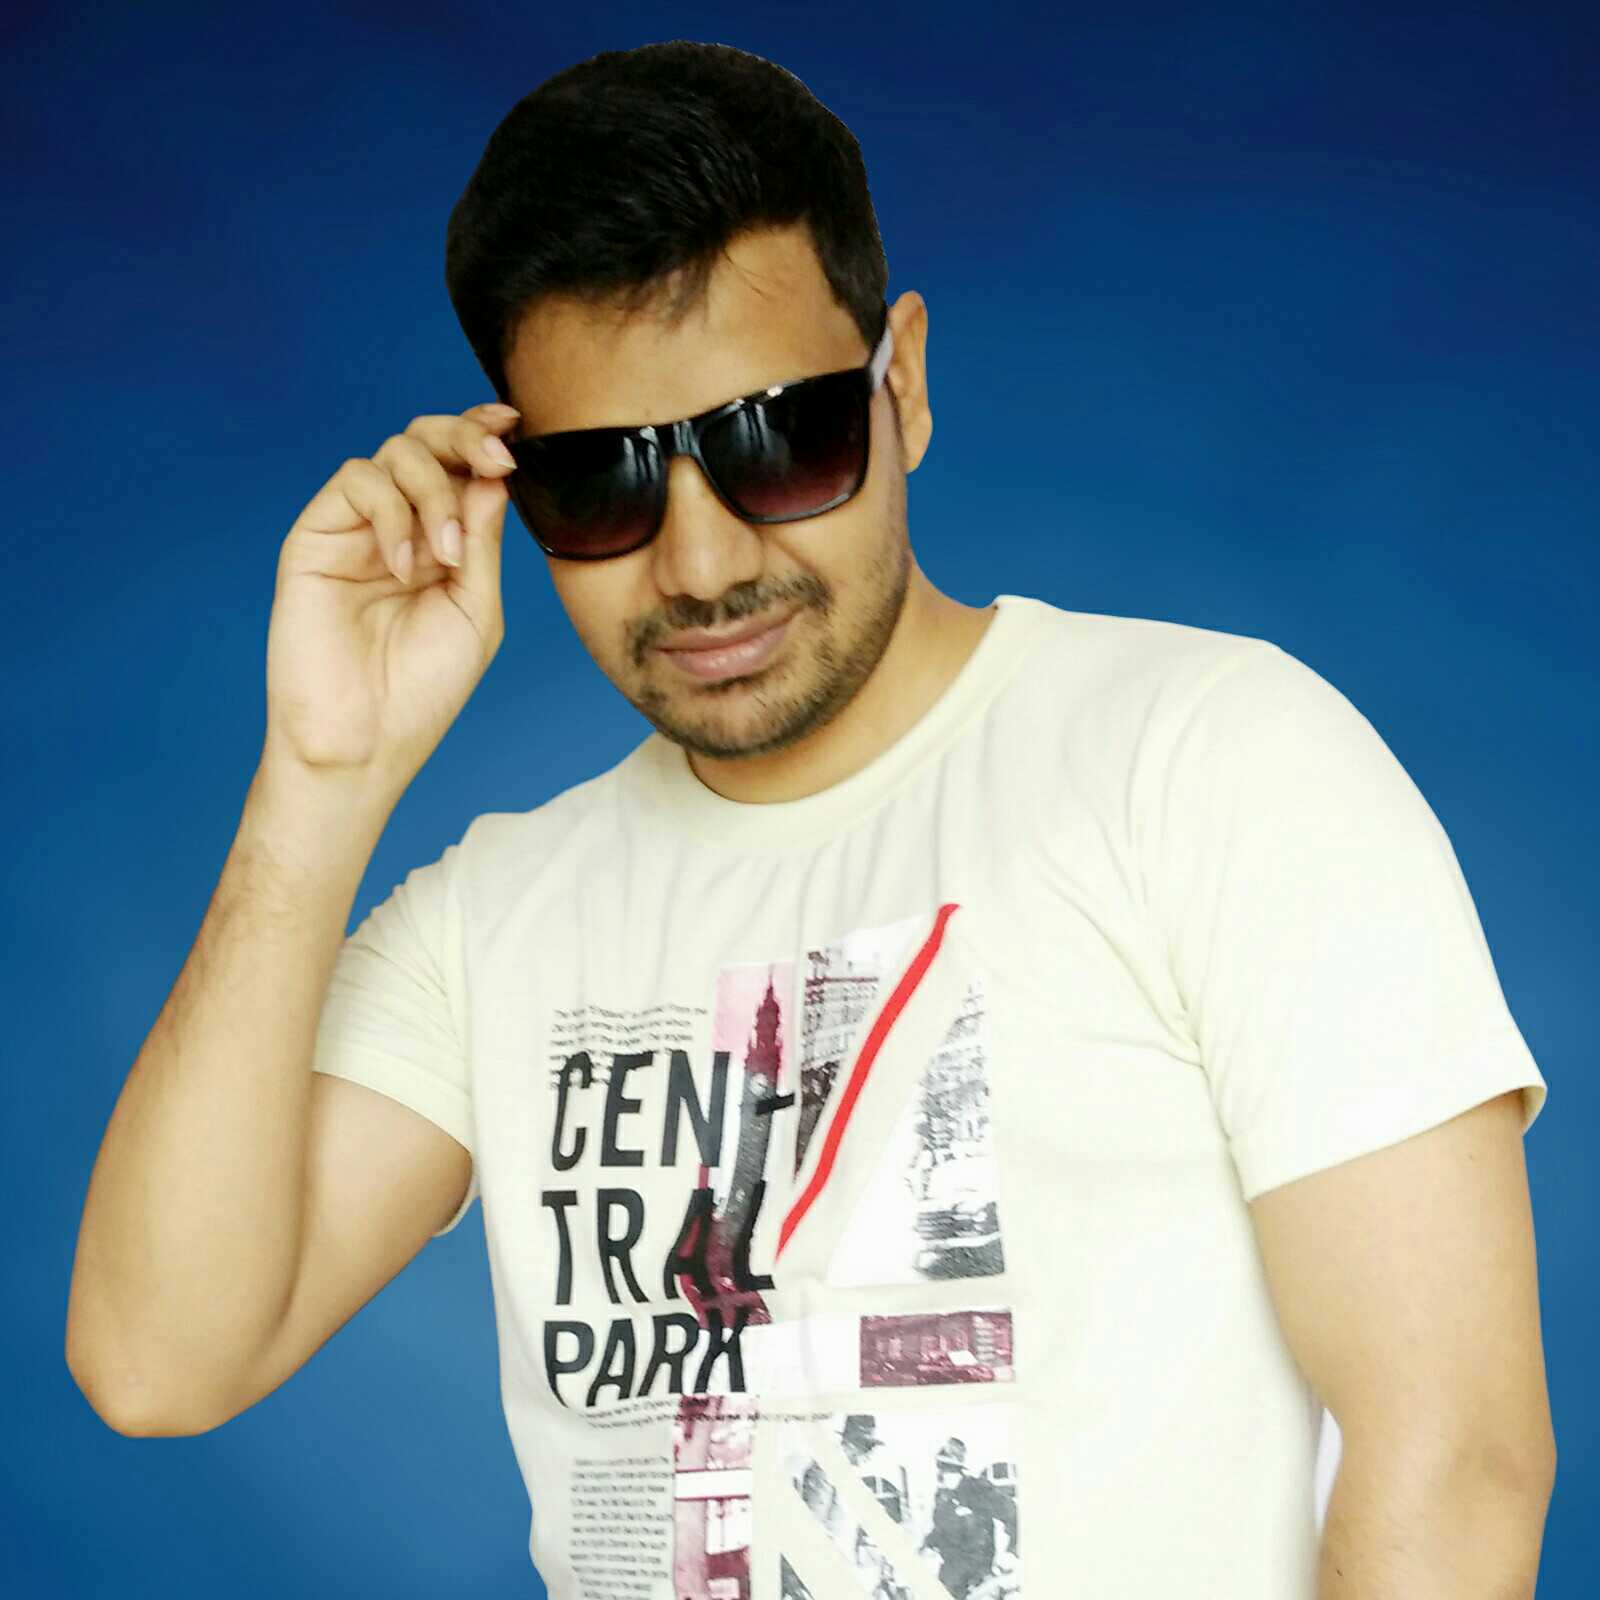 Bipin Sen Blogger, YouTuber, Social Media Influencer, Singer, Photographer, Traveller